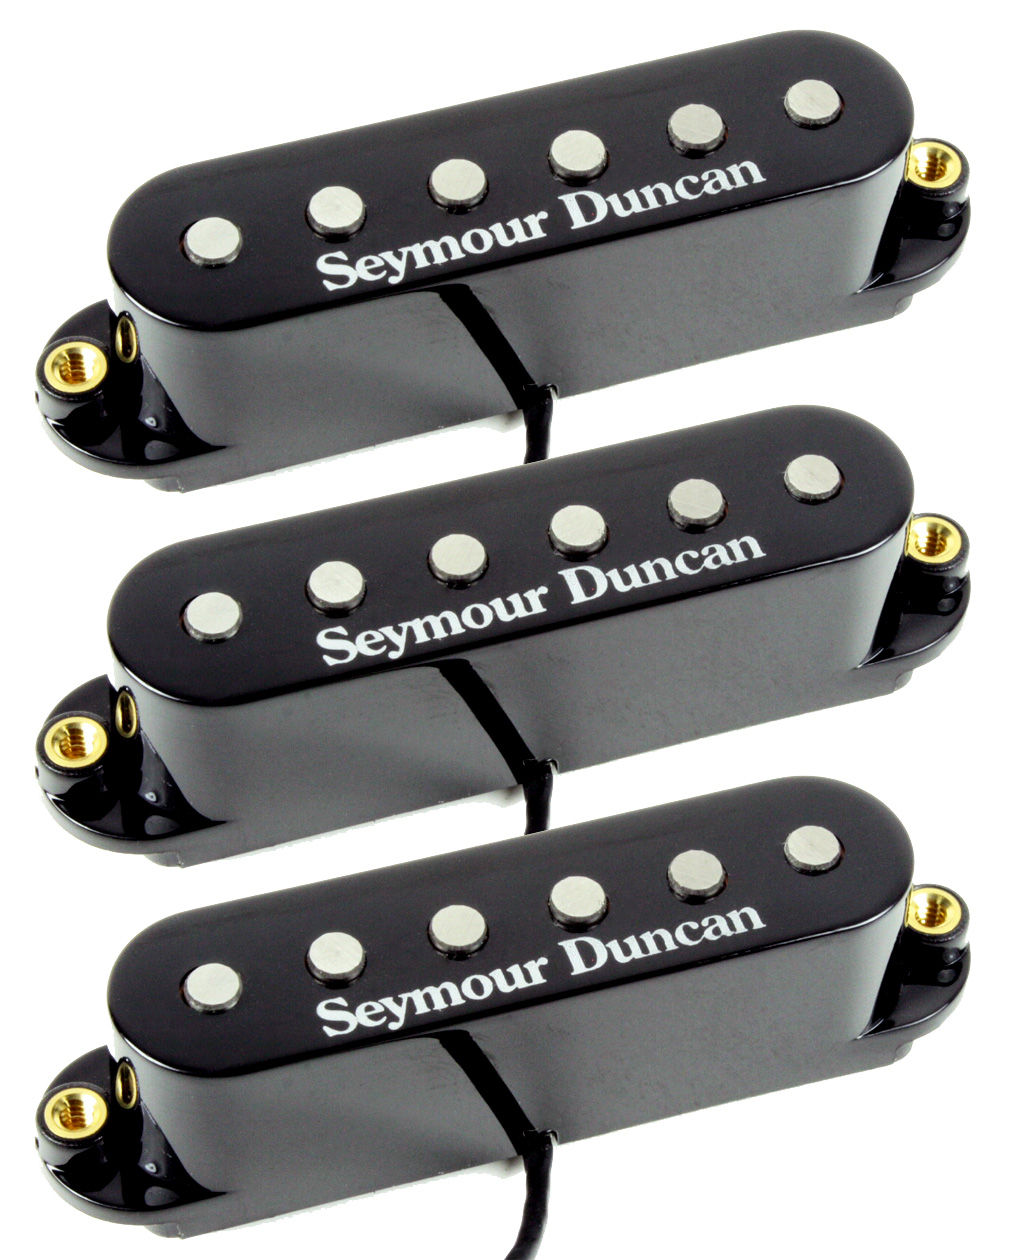 Seymour Duncan STK-S4s Classic Stack Plus Strat Bridge 3 Pickup ...